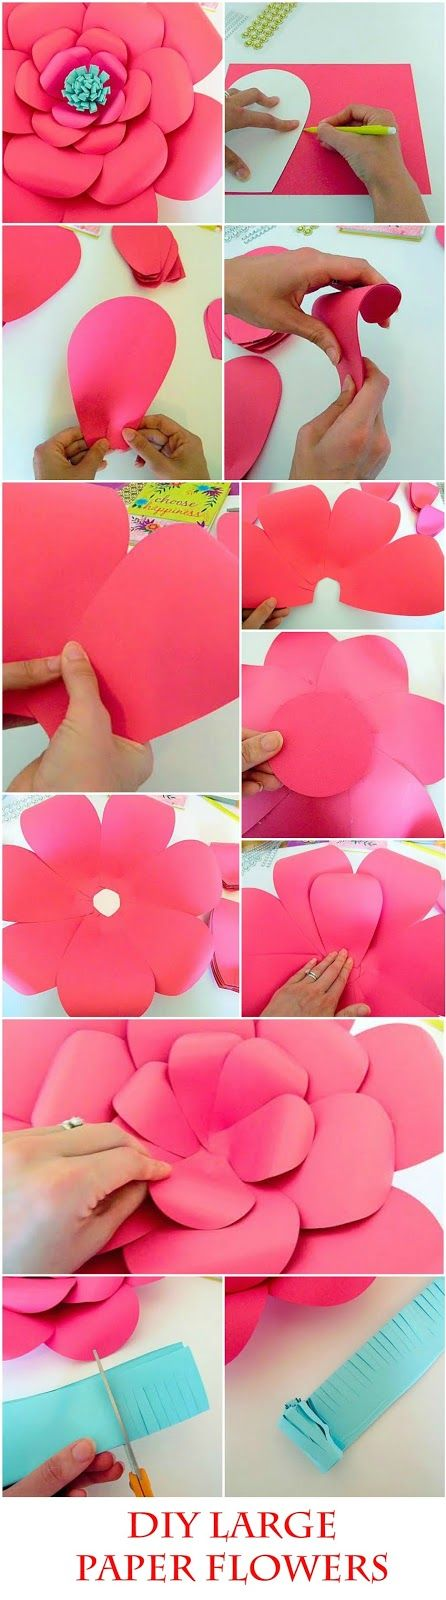 How To Make Large Paper Flowers Easy Diy Giant Paper Flower Get